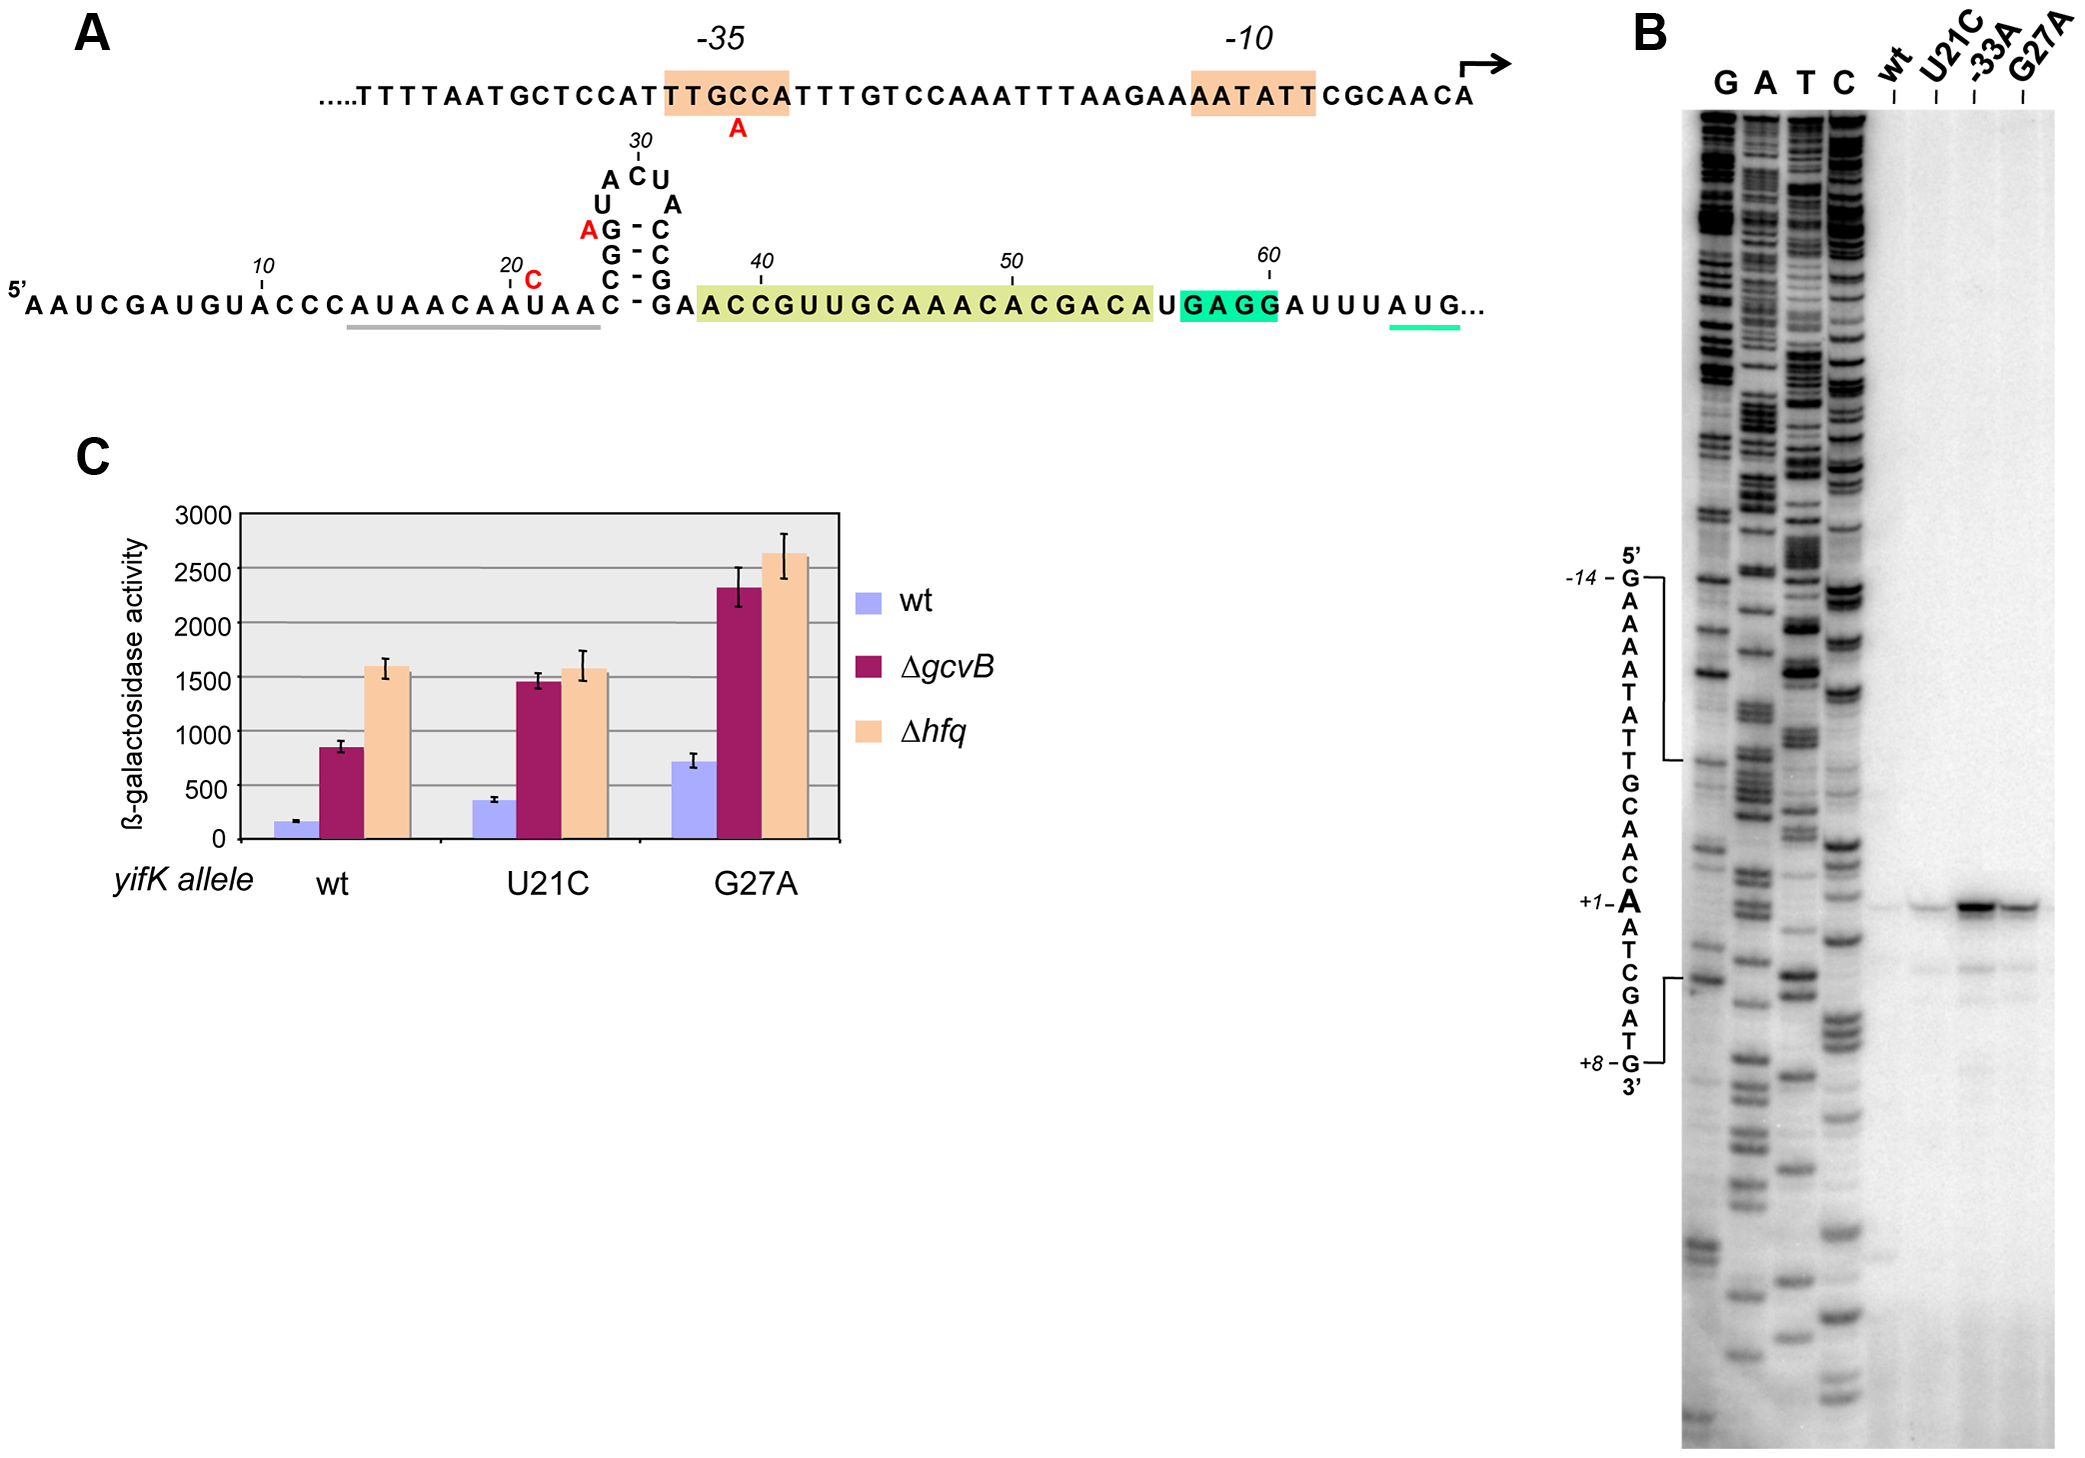 Characterization and mutational analysis of the leader region of the <i>yifK</i> gene.